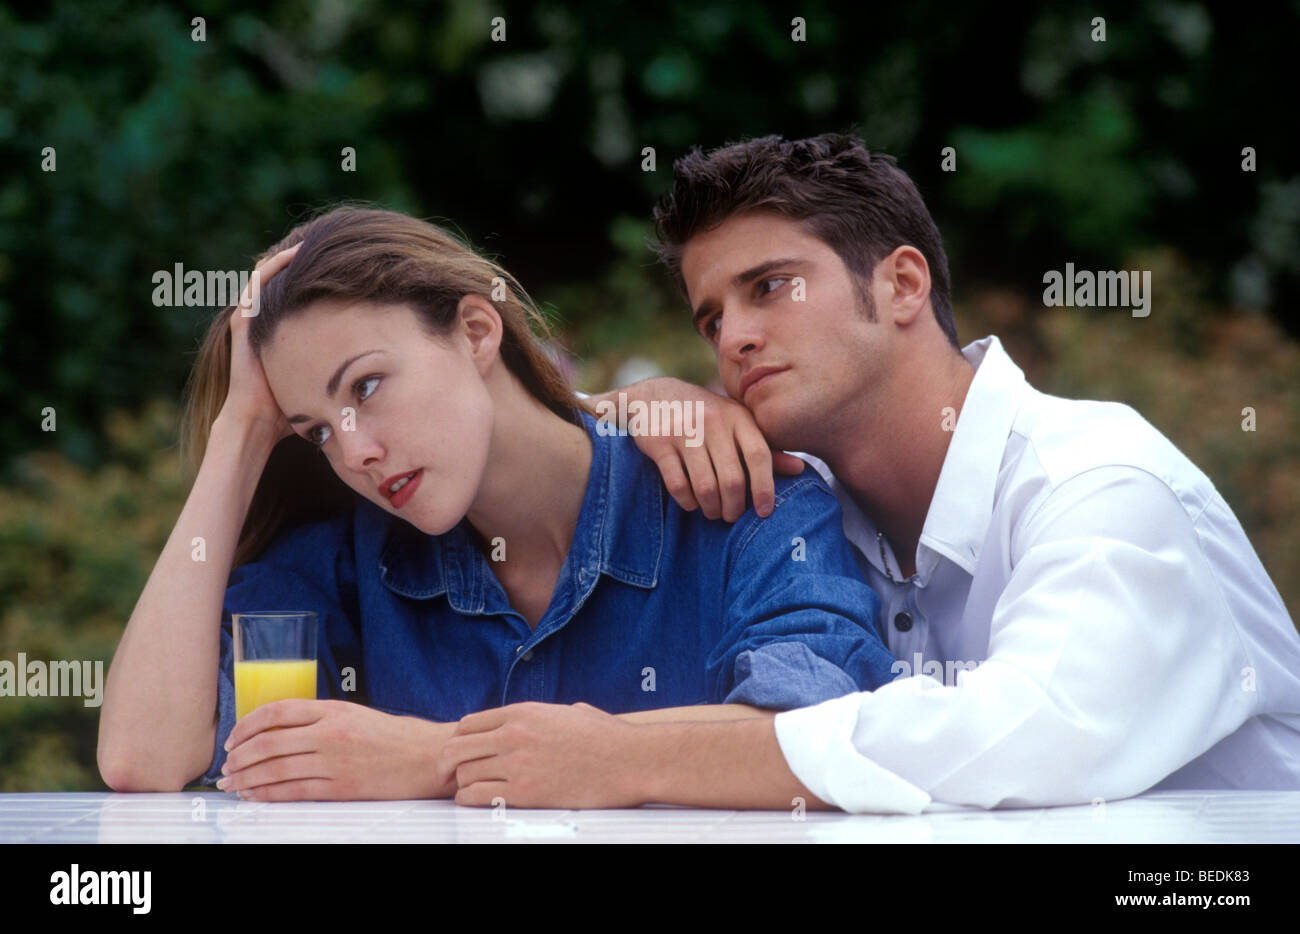 Woman fed up of partner - Stock Image